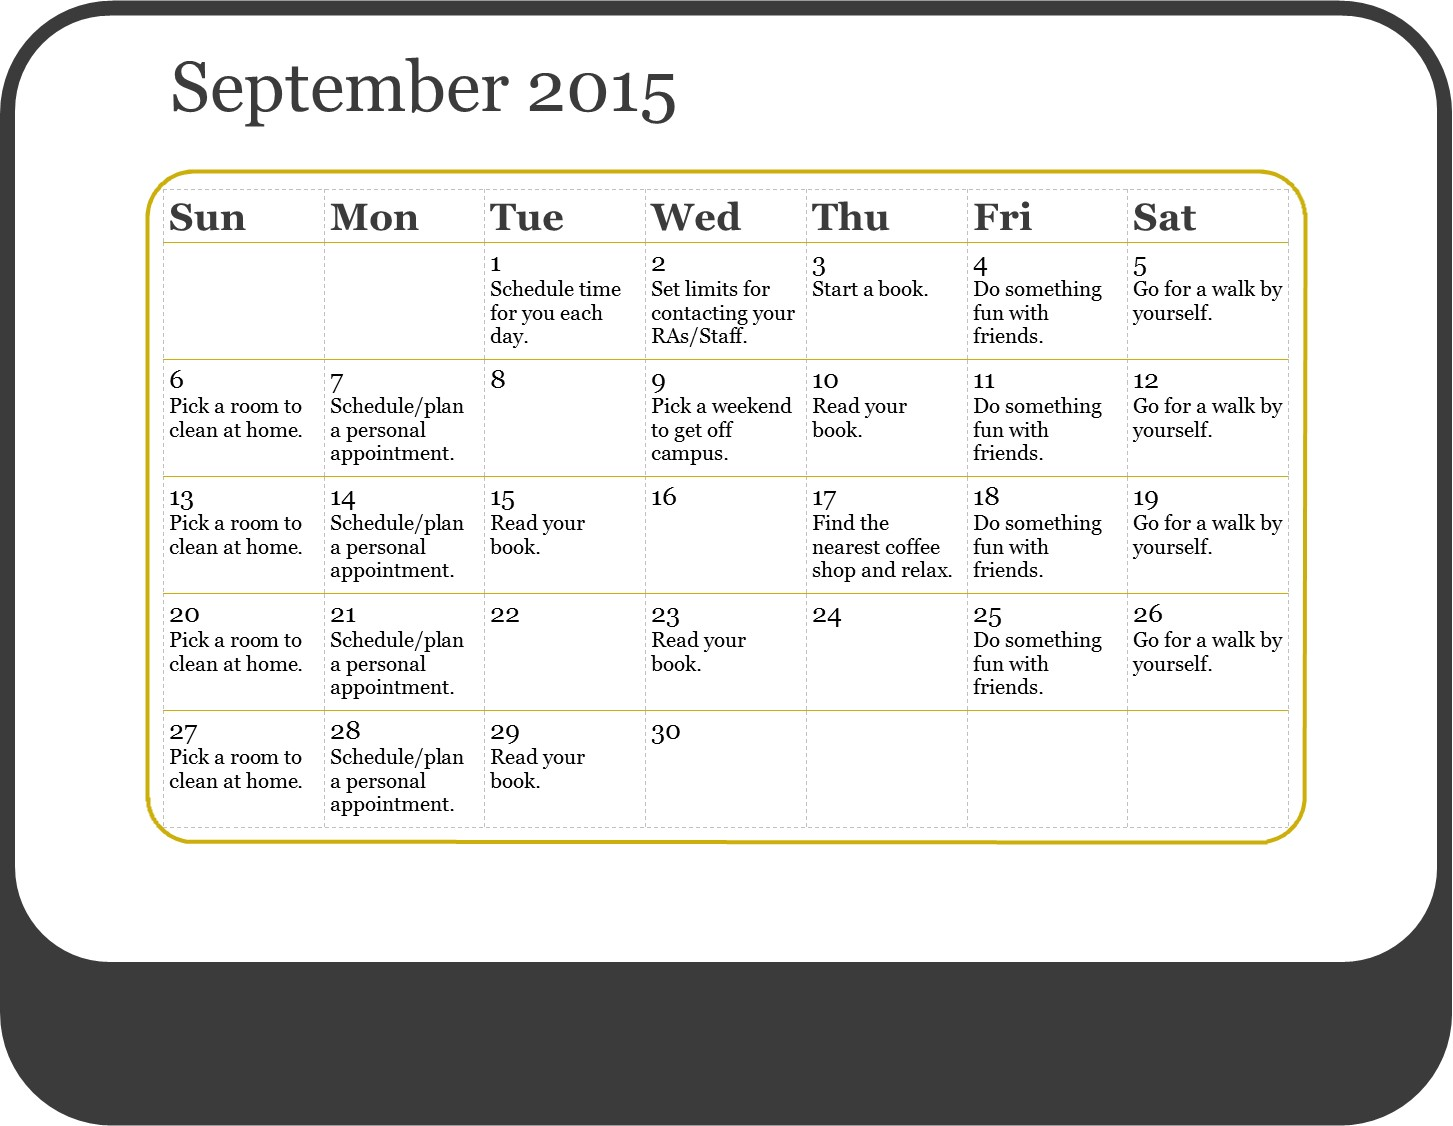 Add Calendar Days Add Or Subtract Days From Date Calendar 12 30 Days Of Self Care Glacuho Health And Wellness Committee